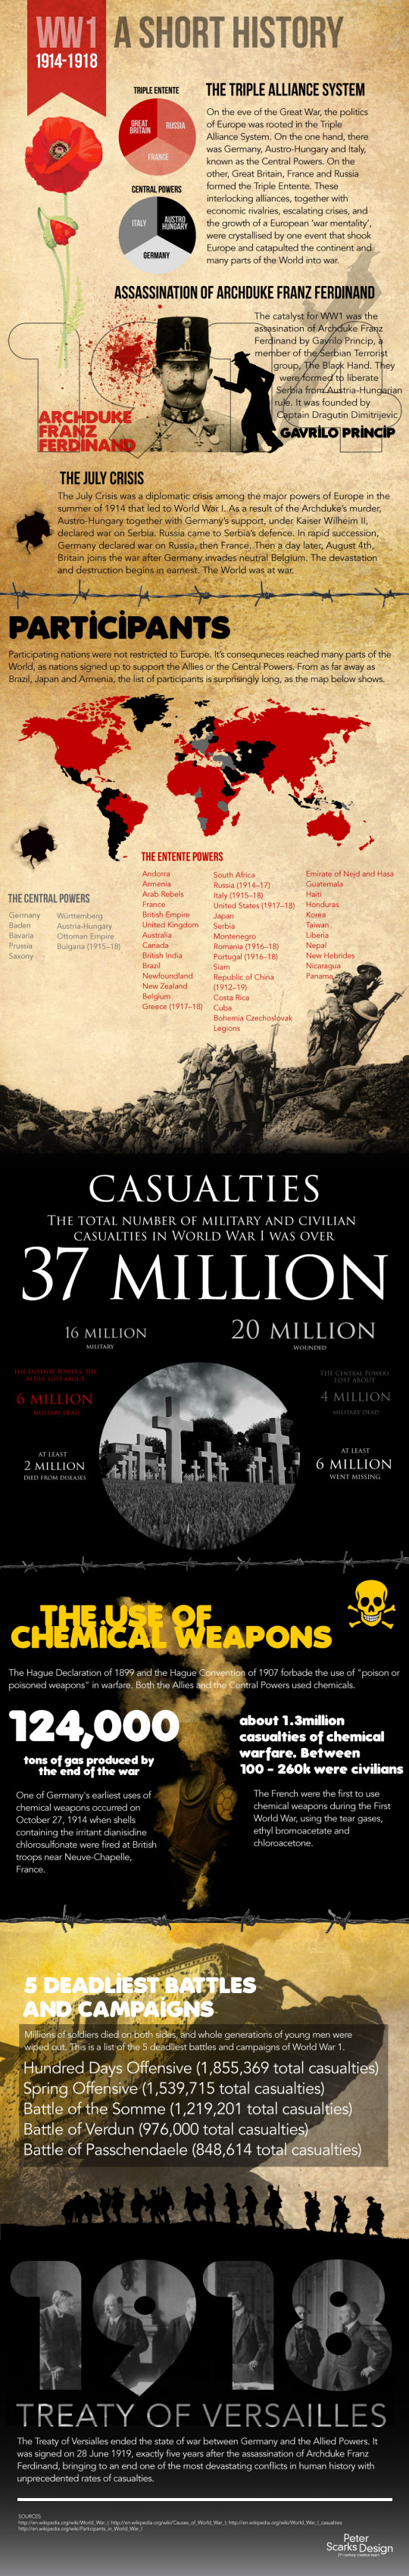 The Best Resources For Learning About World War I | Larry